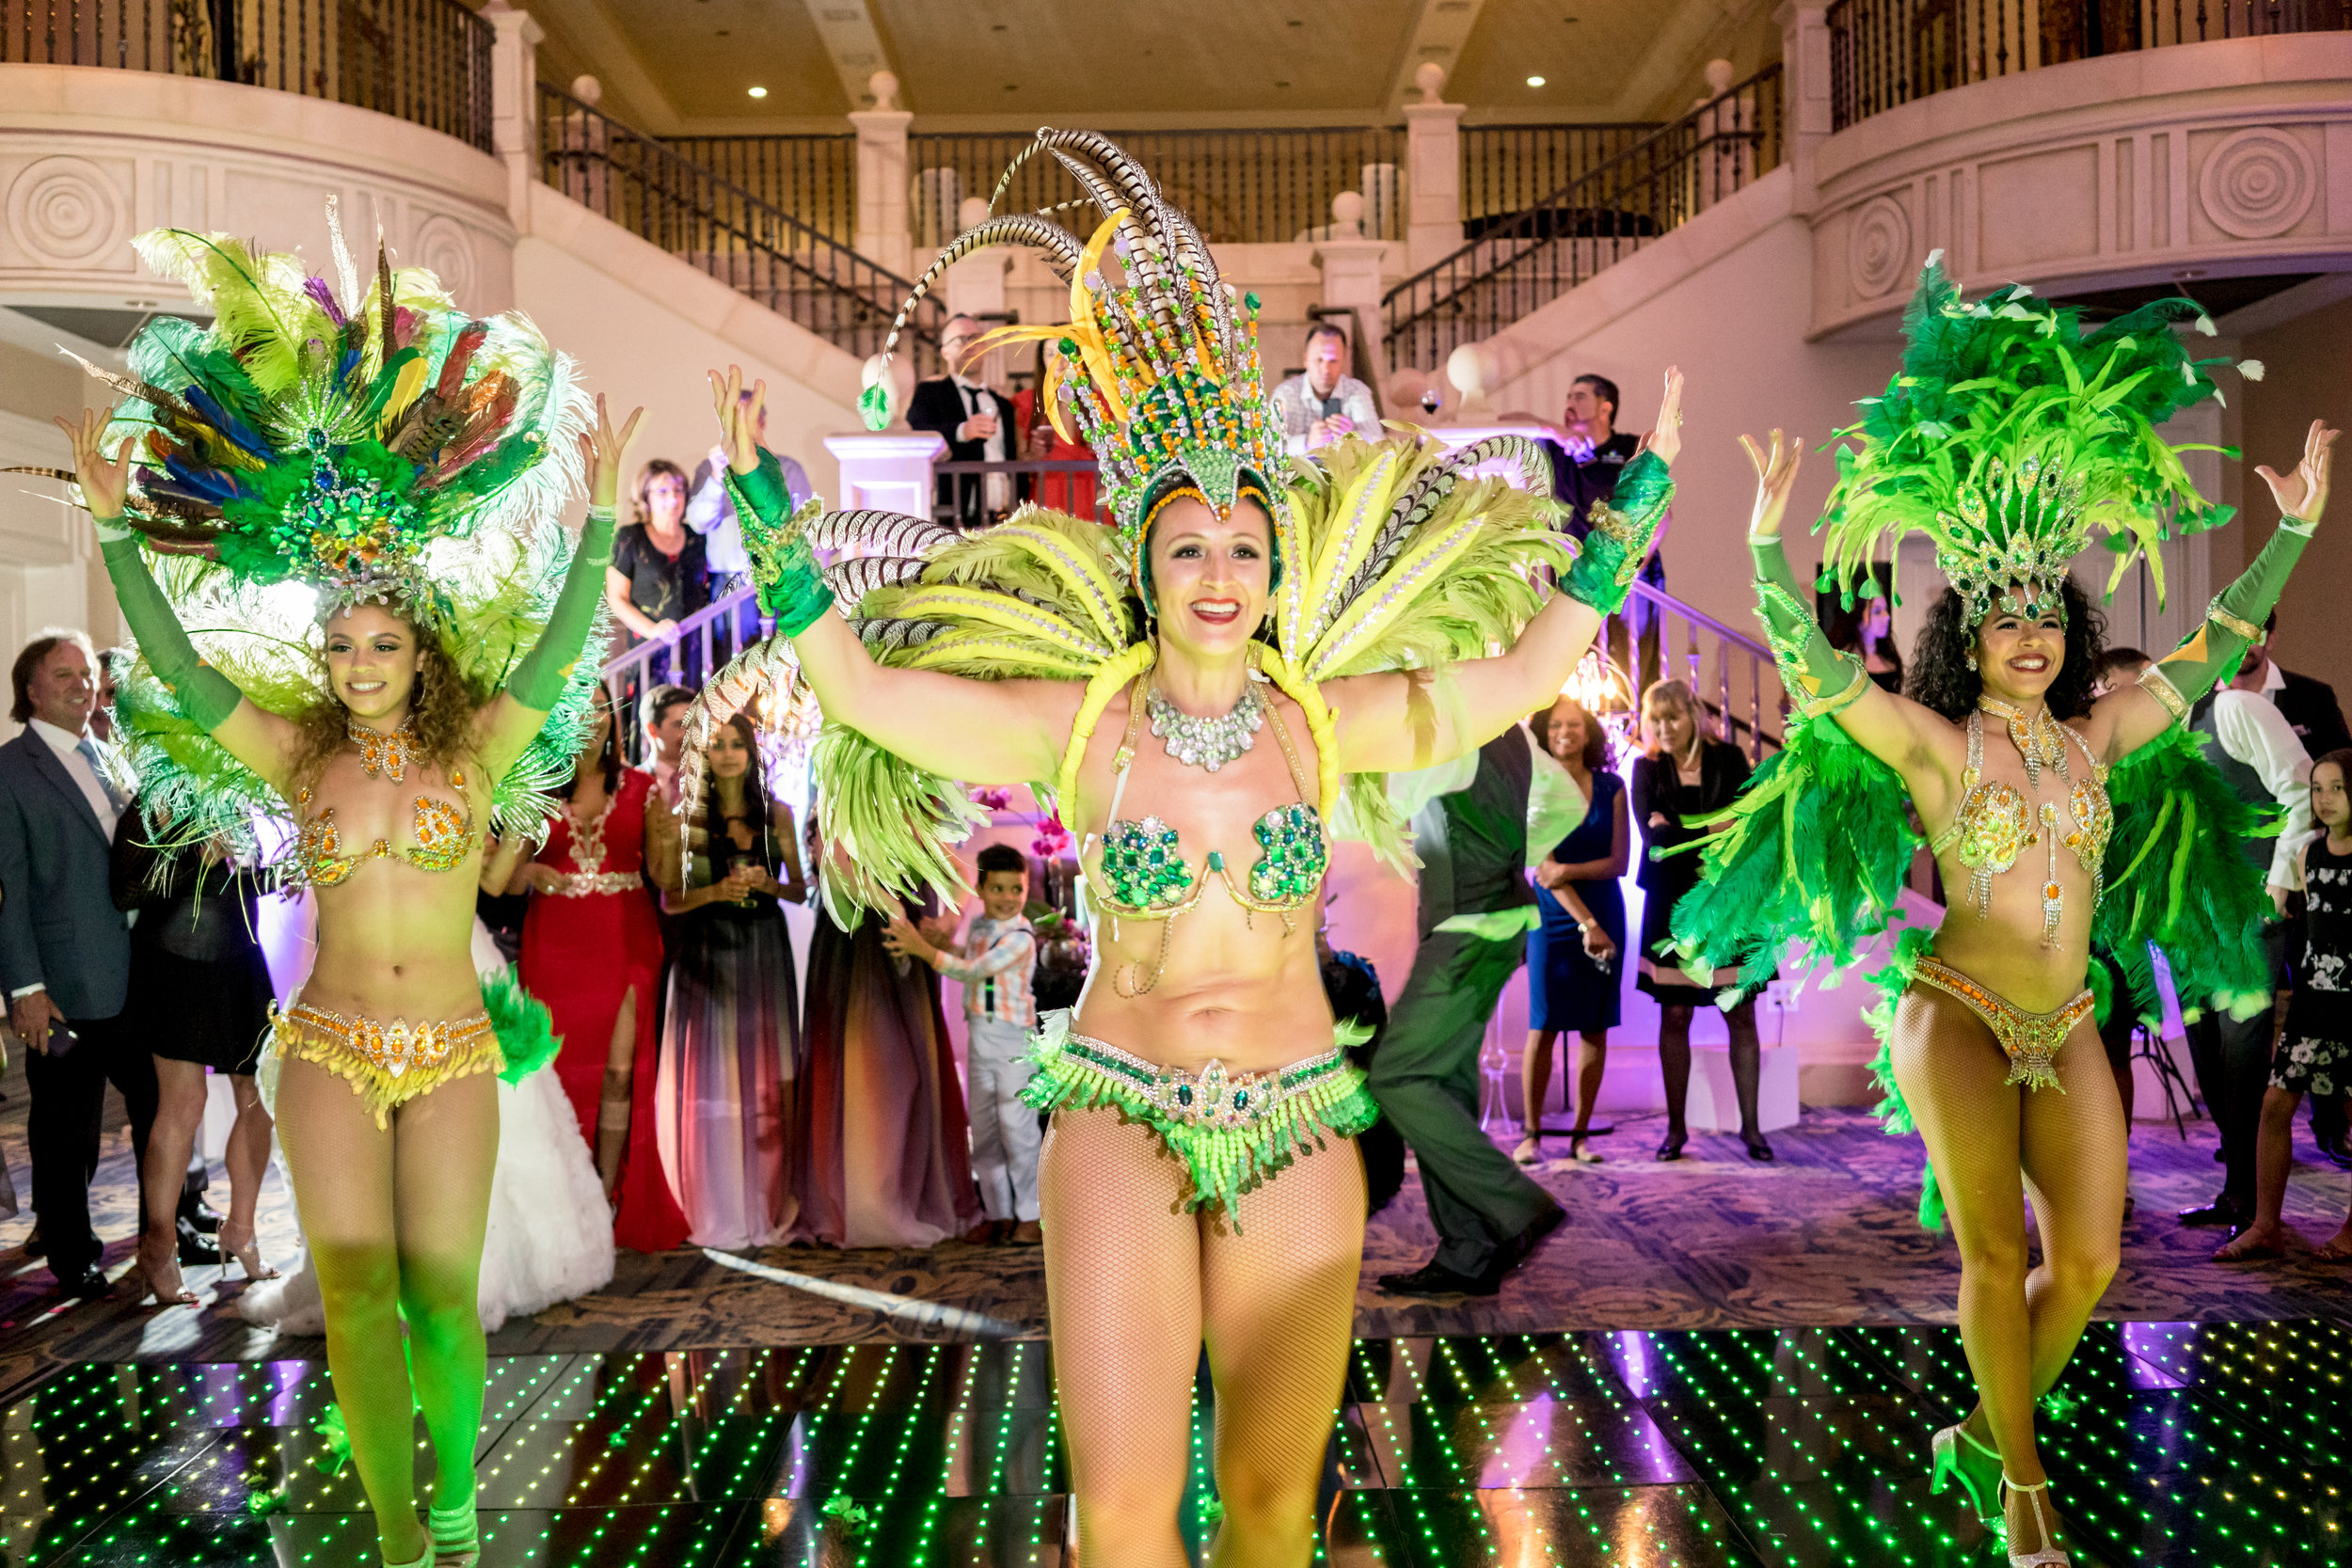 The samba dancers were a great surprise for everyone during the wedding reception.